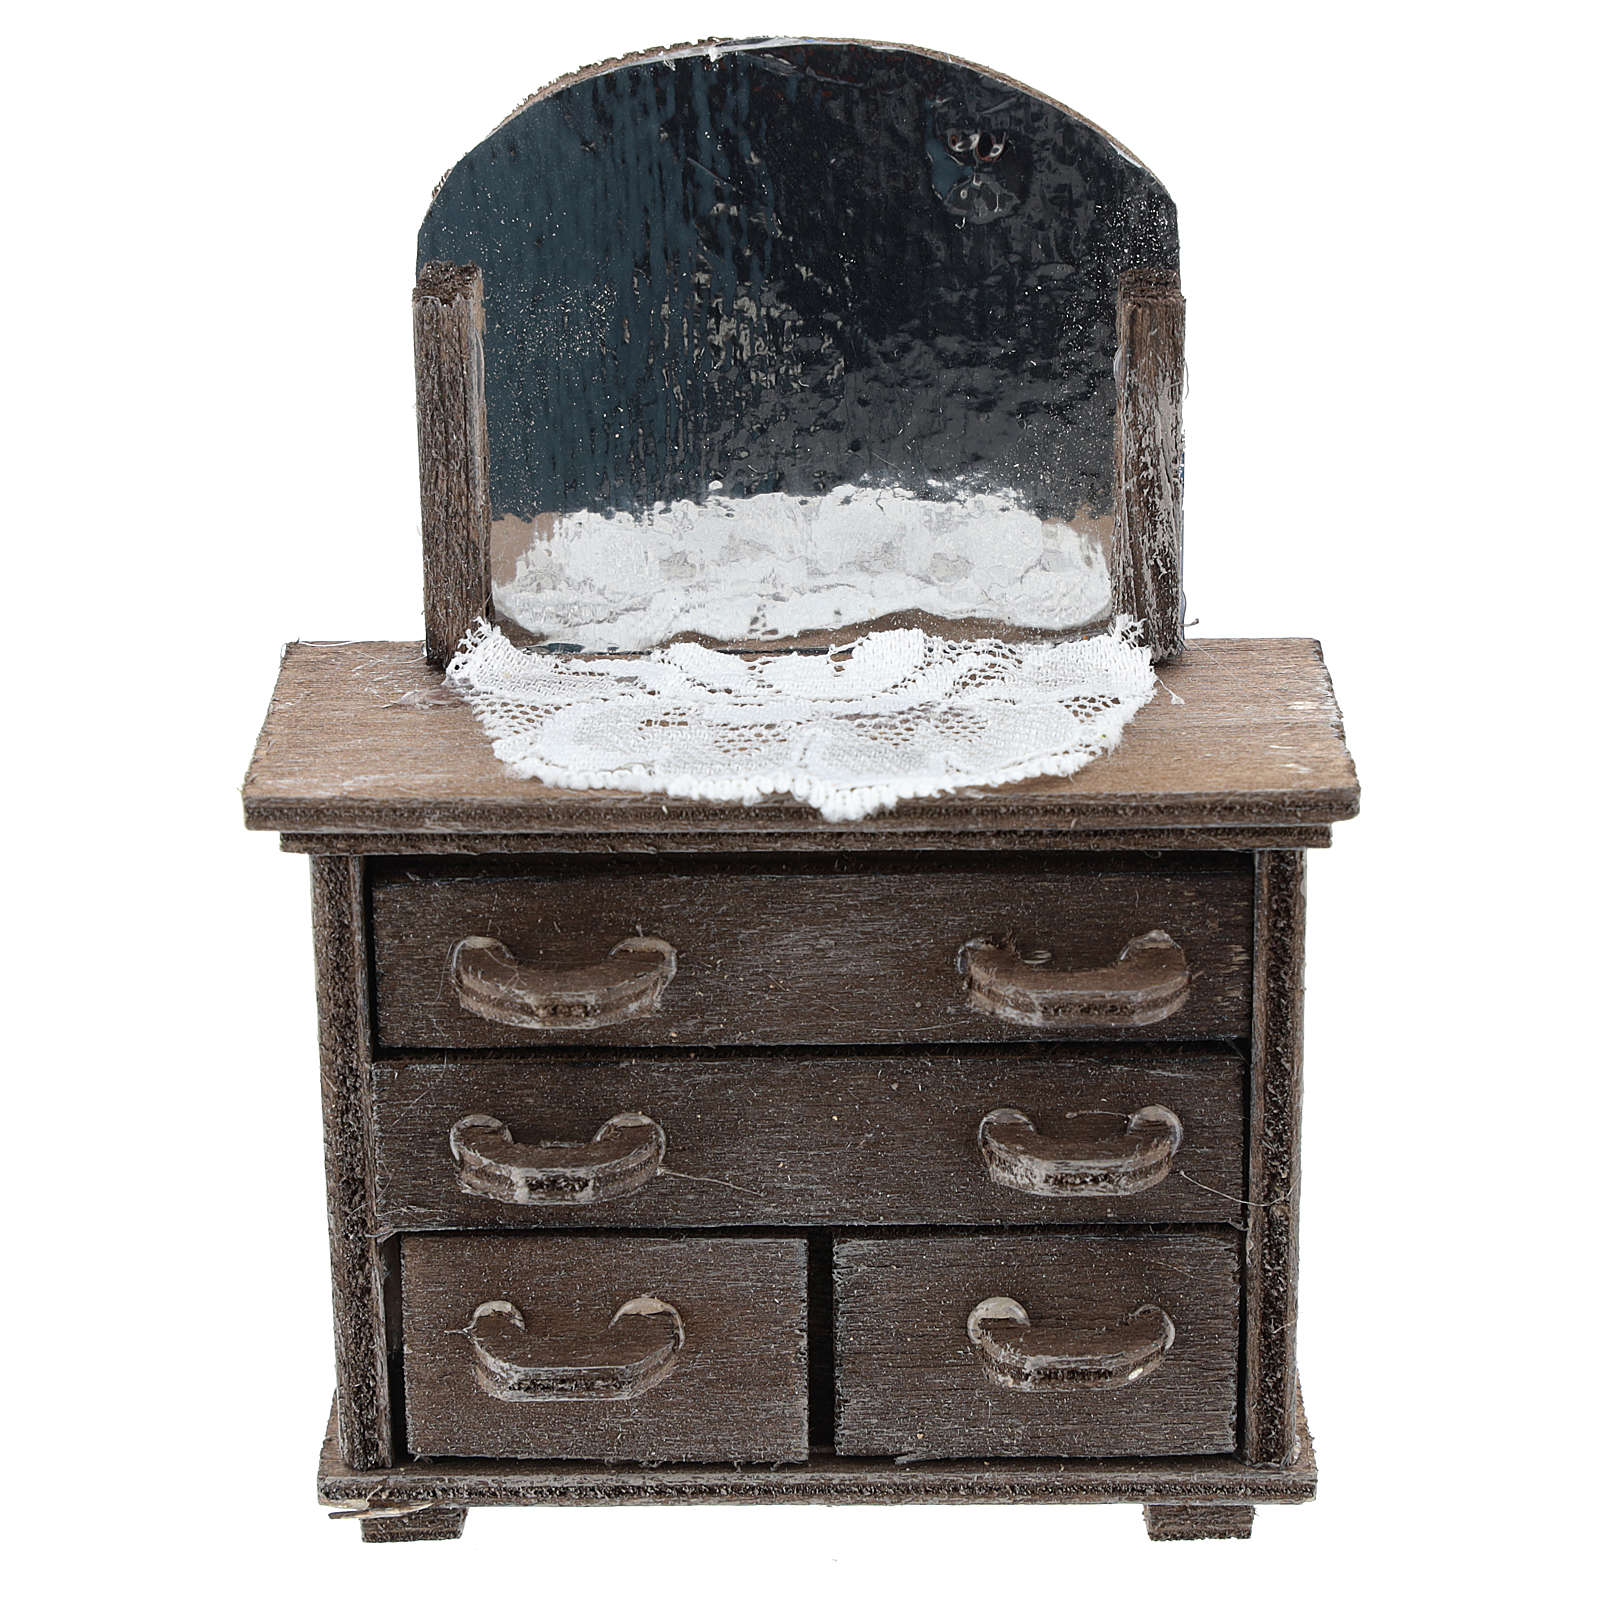 Chest of drawers with mirror and doily for Nativity scenes 10 cm 4